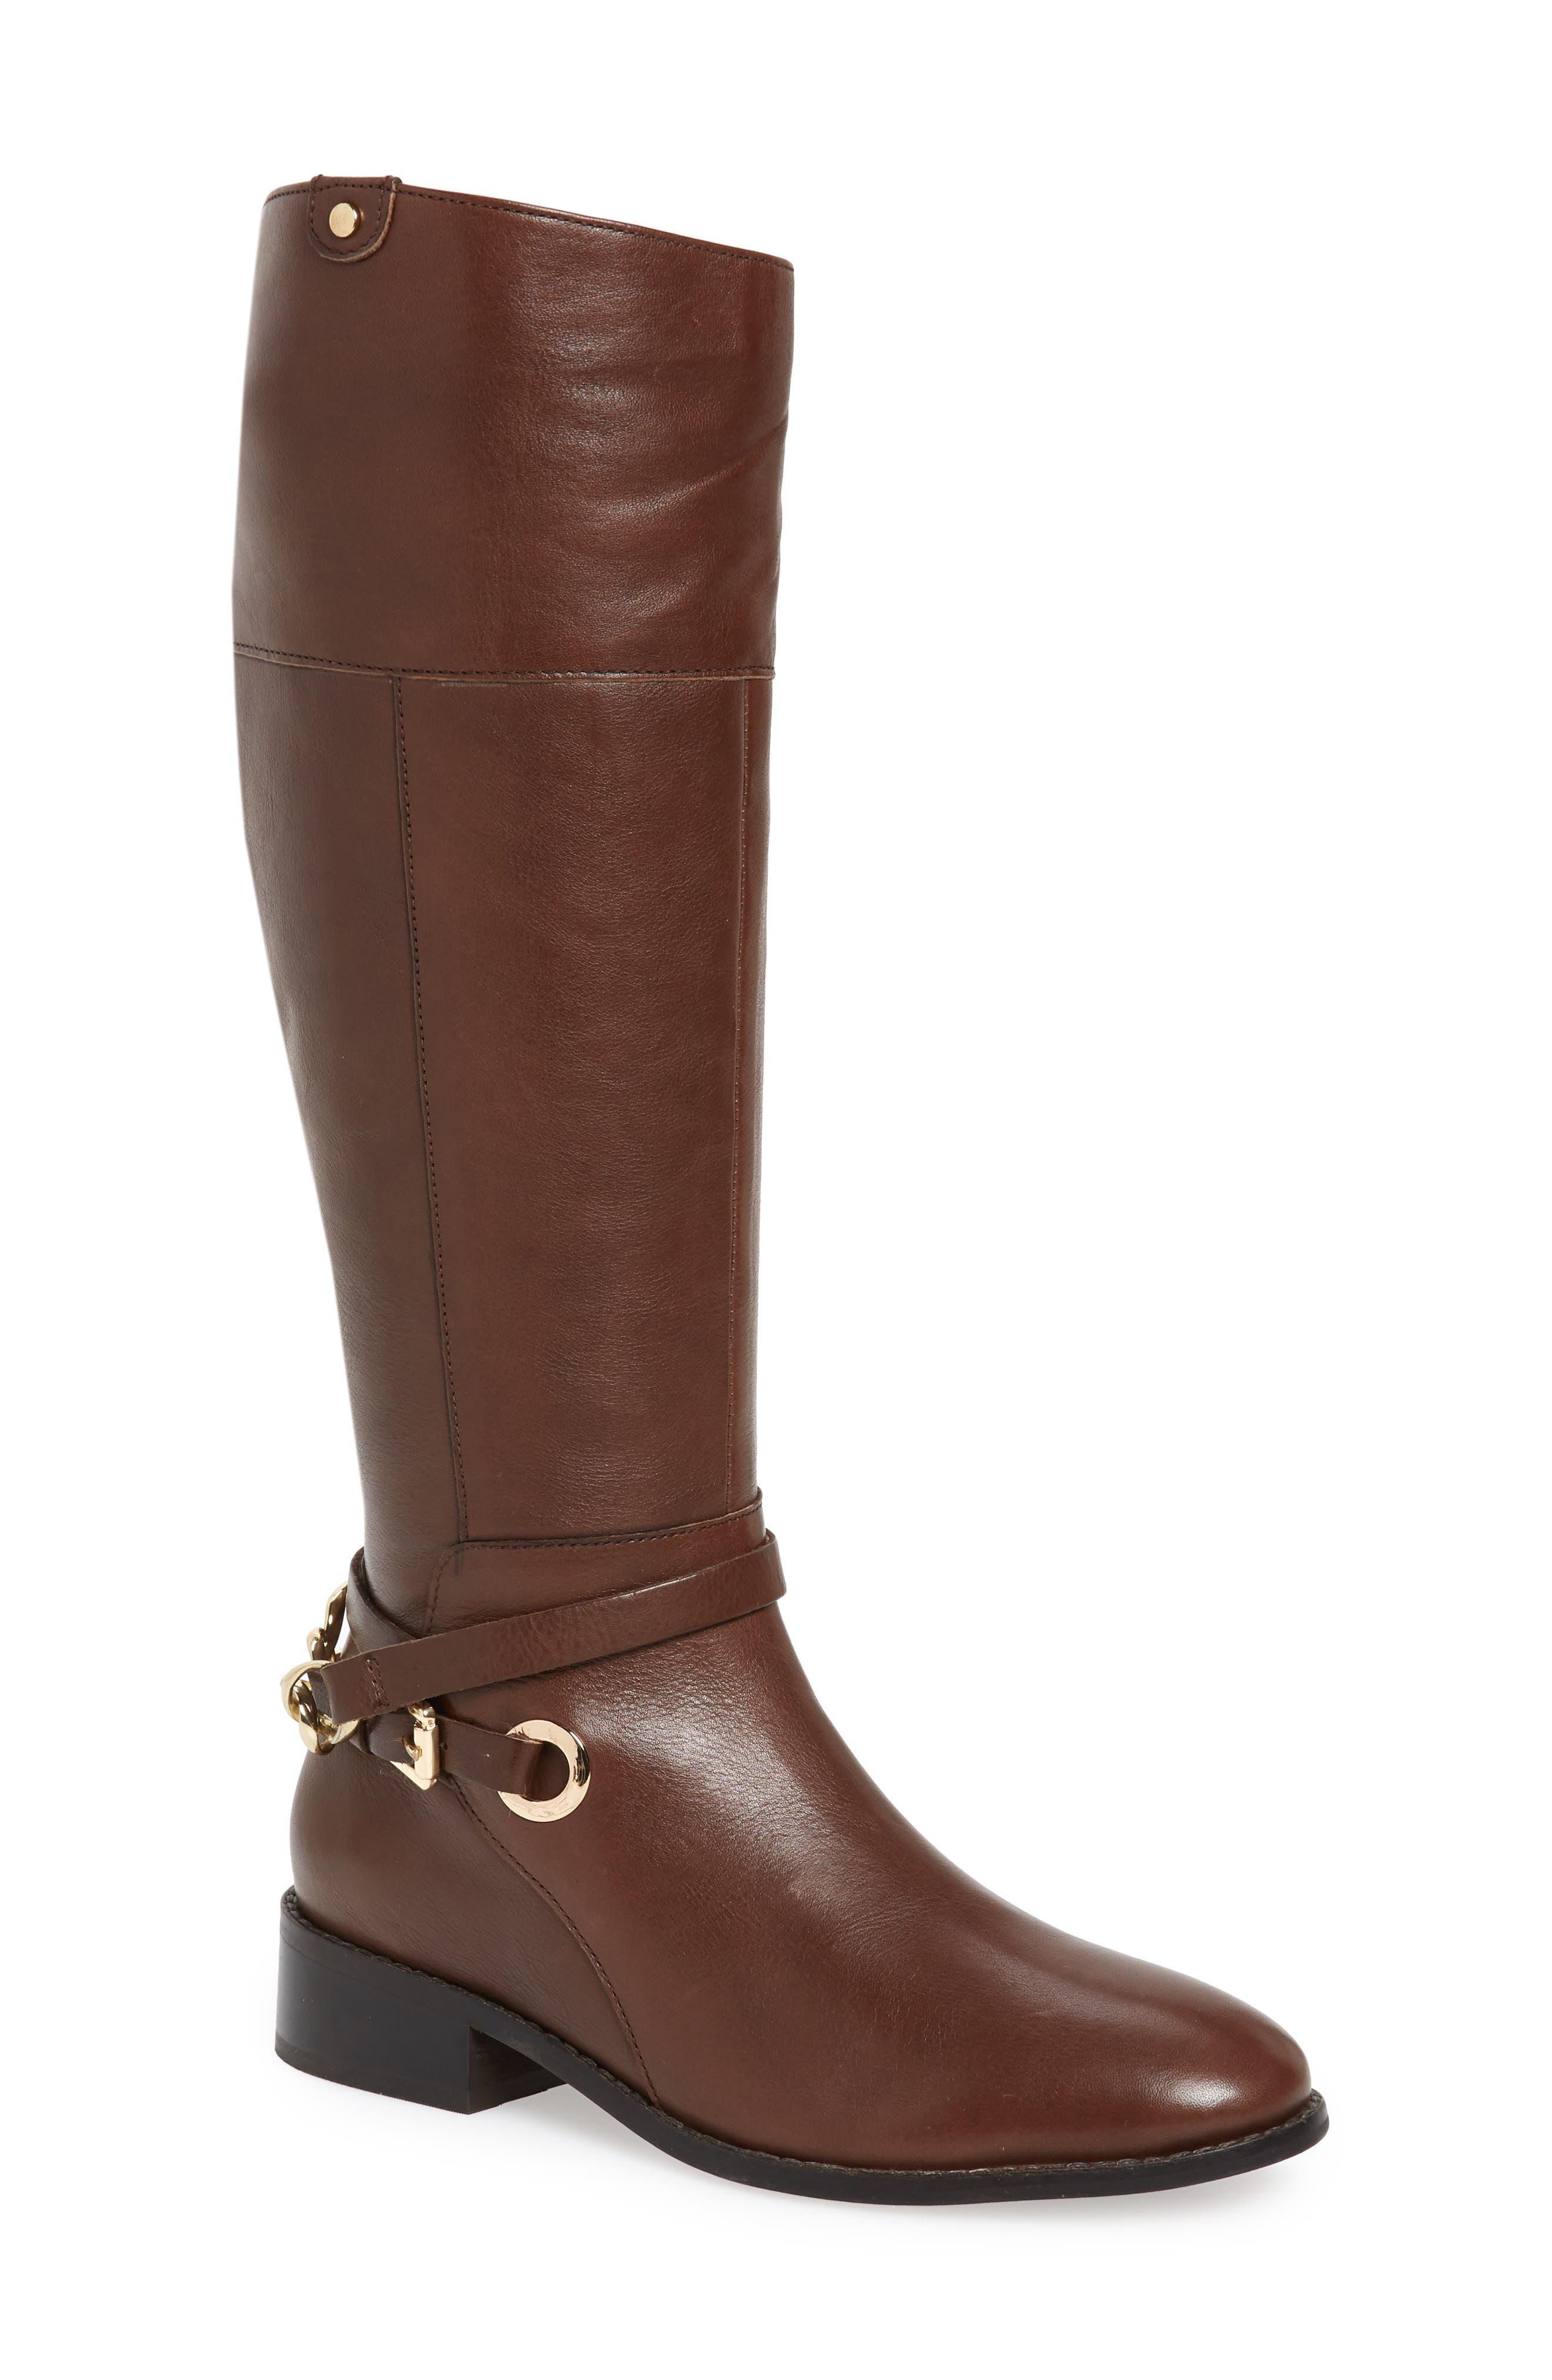 Seychelles Resin Knee High Riding Boot, Brown